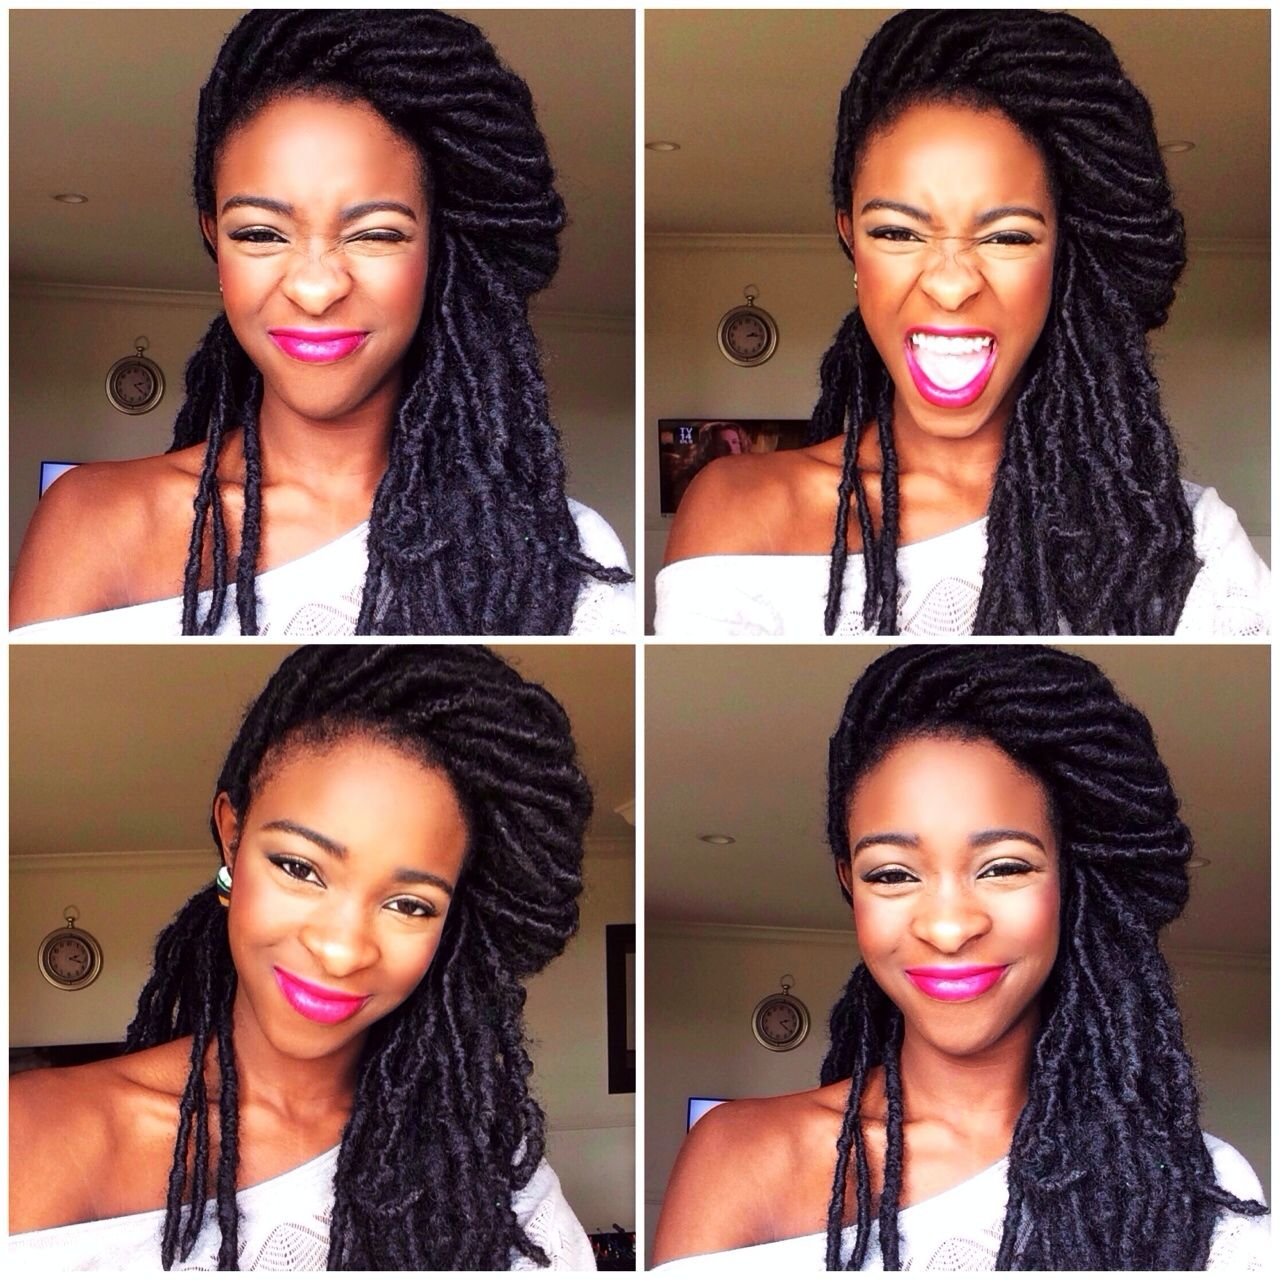 Awe Inspiring Twist Hairstyles Hairstyles And Twists On Pinterest Short Hairstyles For Black Women Fulllsitofus